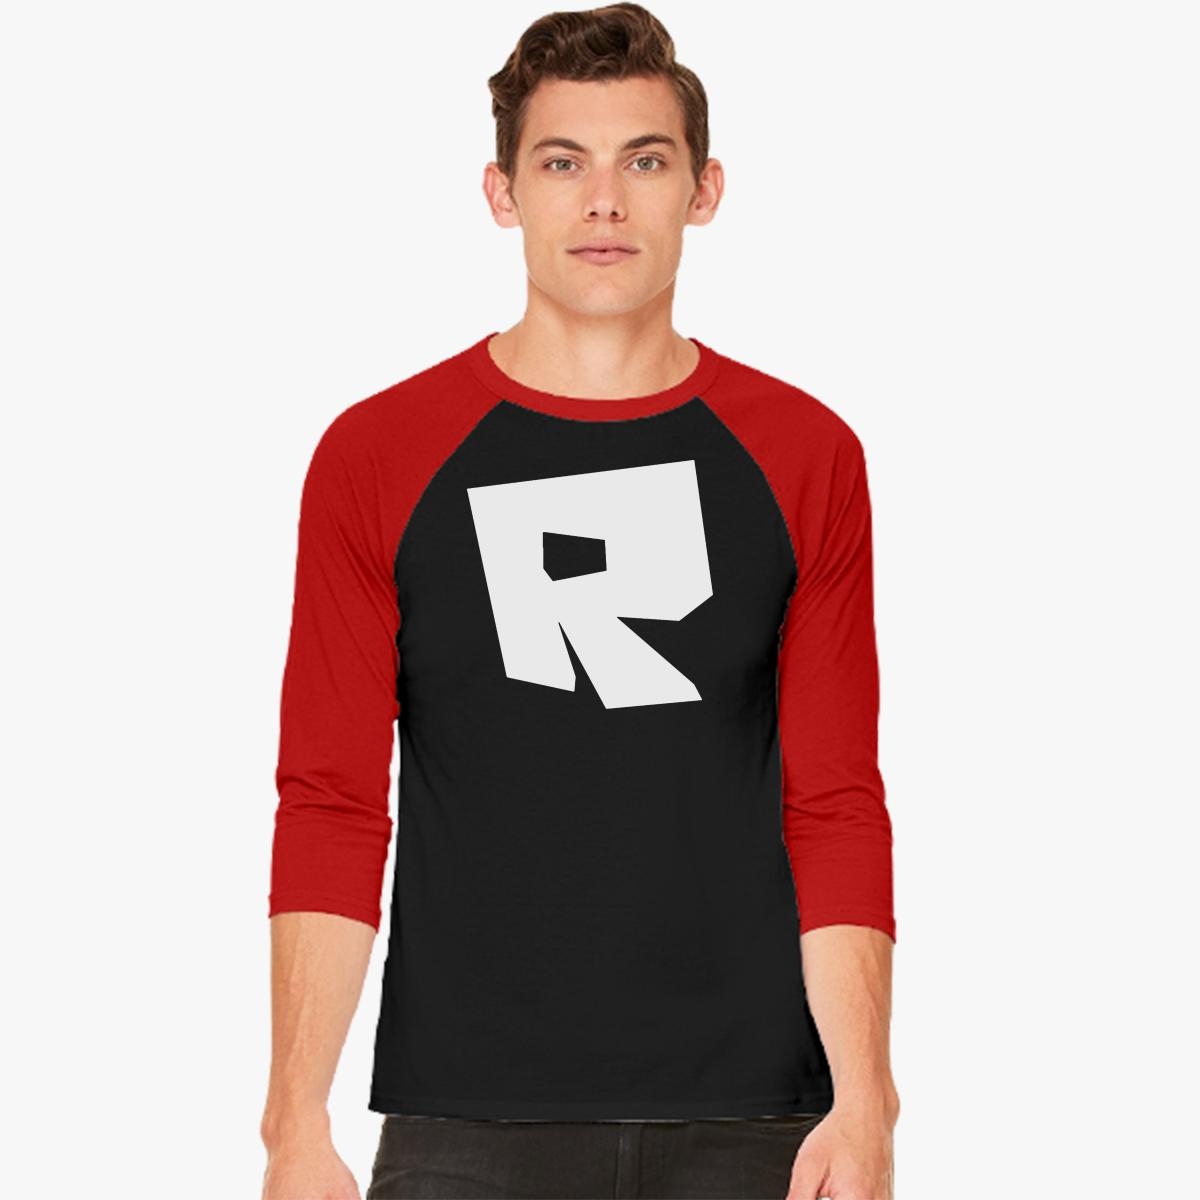 How To Make Your Own T Shirt In Roblox 2018